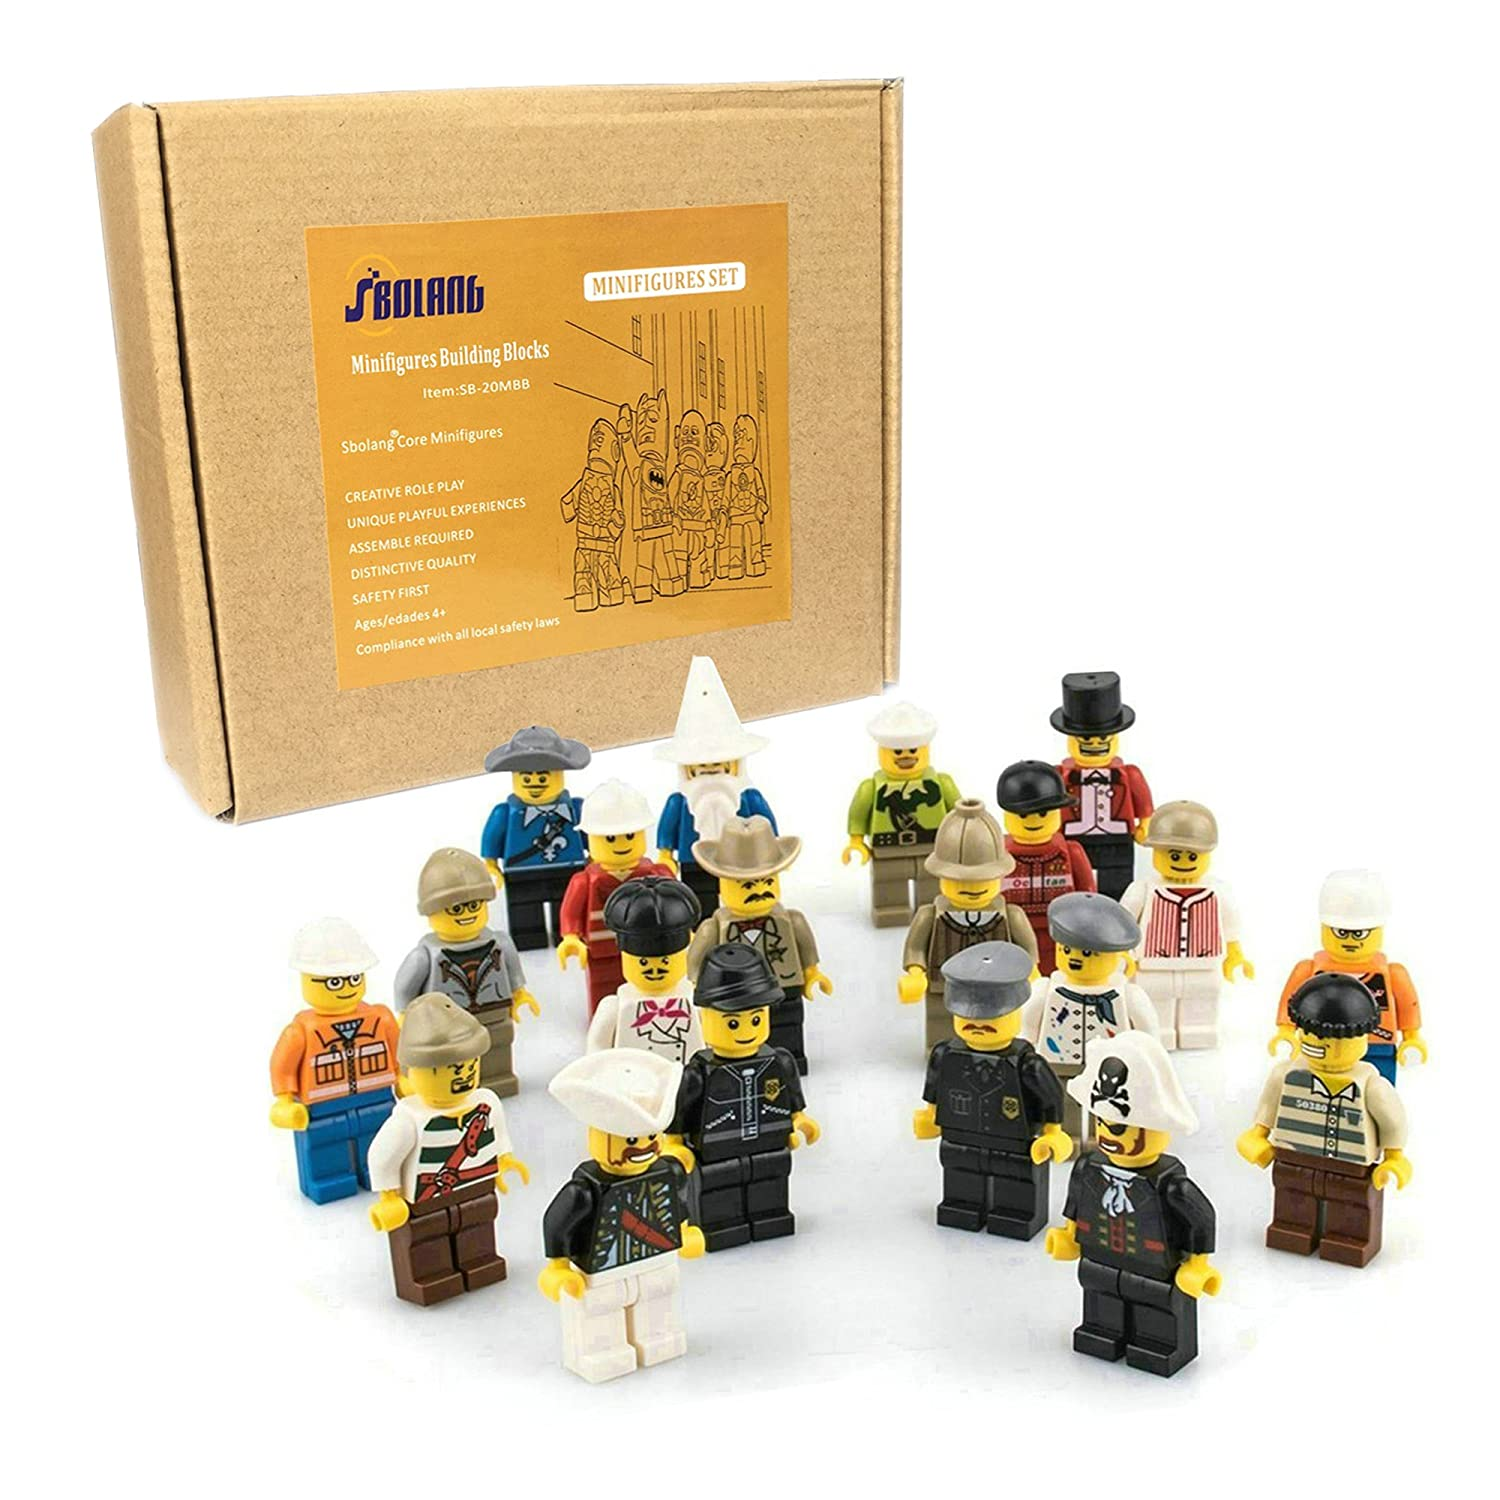 ArRord Premium Quality 20pcs Family and Community Minifigures Men People Minifigs